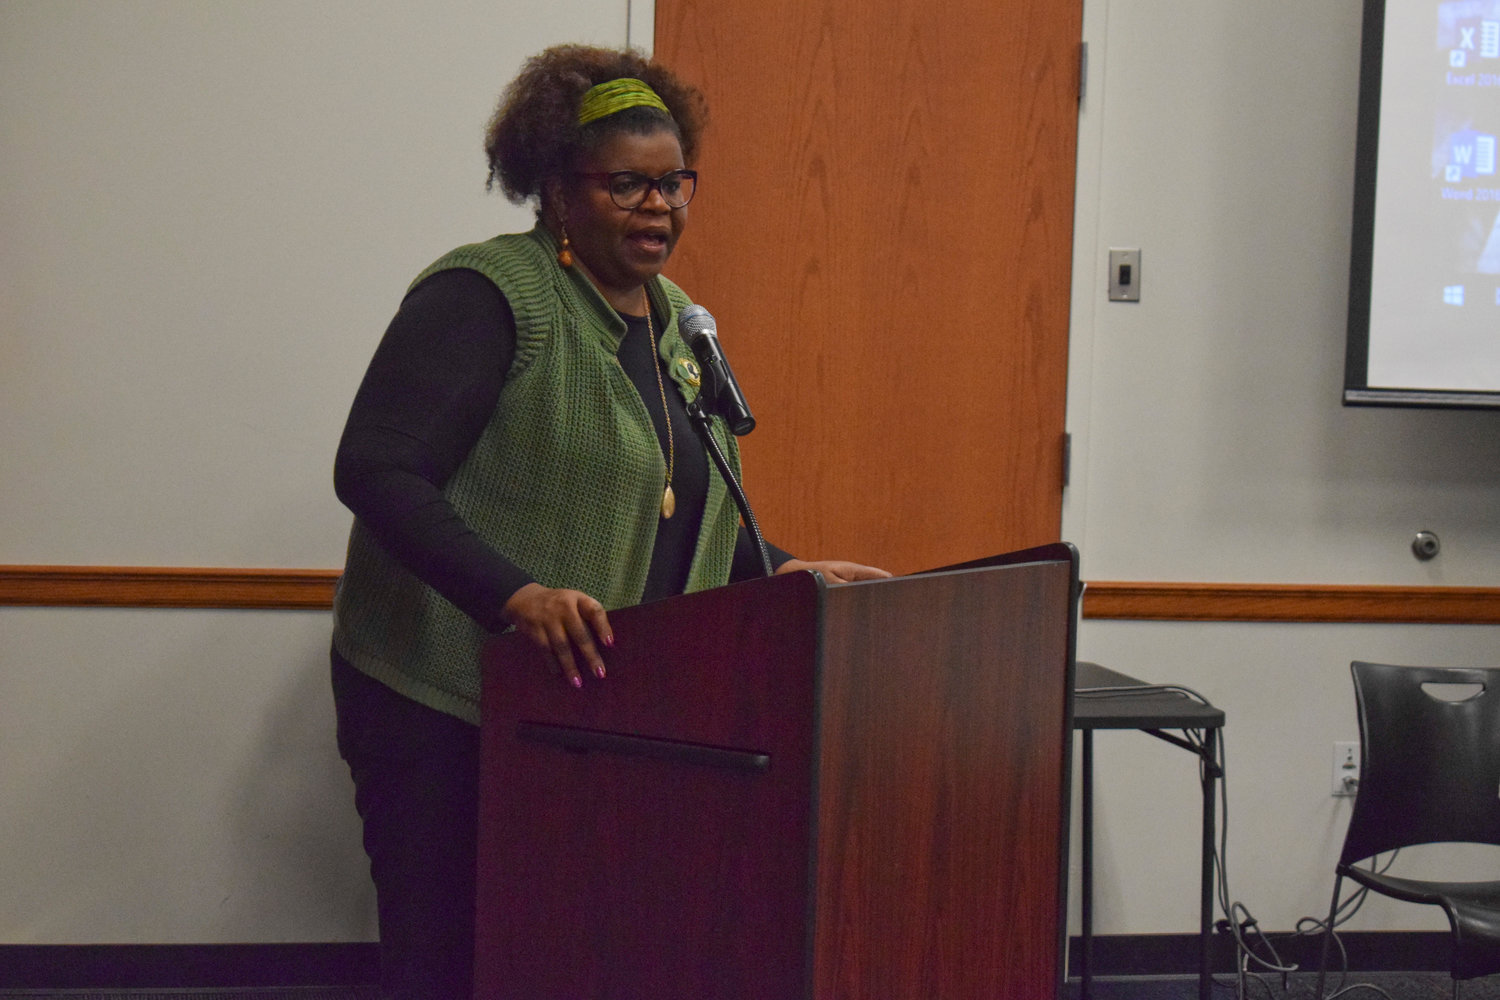 Lisa Newland, President of the Nassau Suffolk Association of Black Social Workers, led the panel discussion revolving around the inequality black residents face throughout Nassau County.